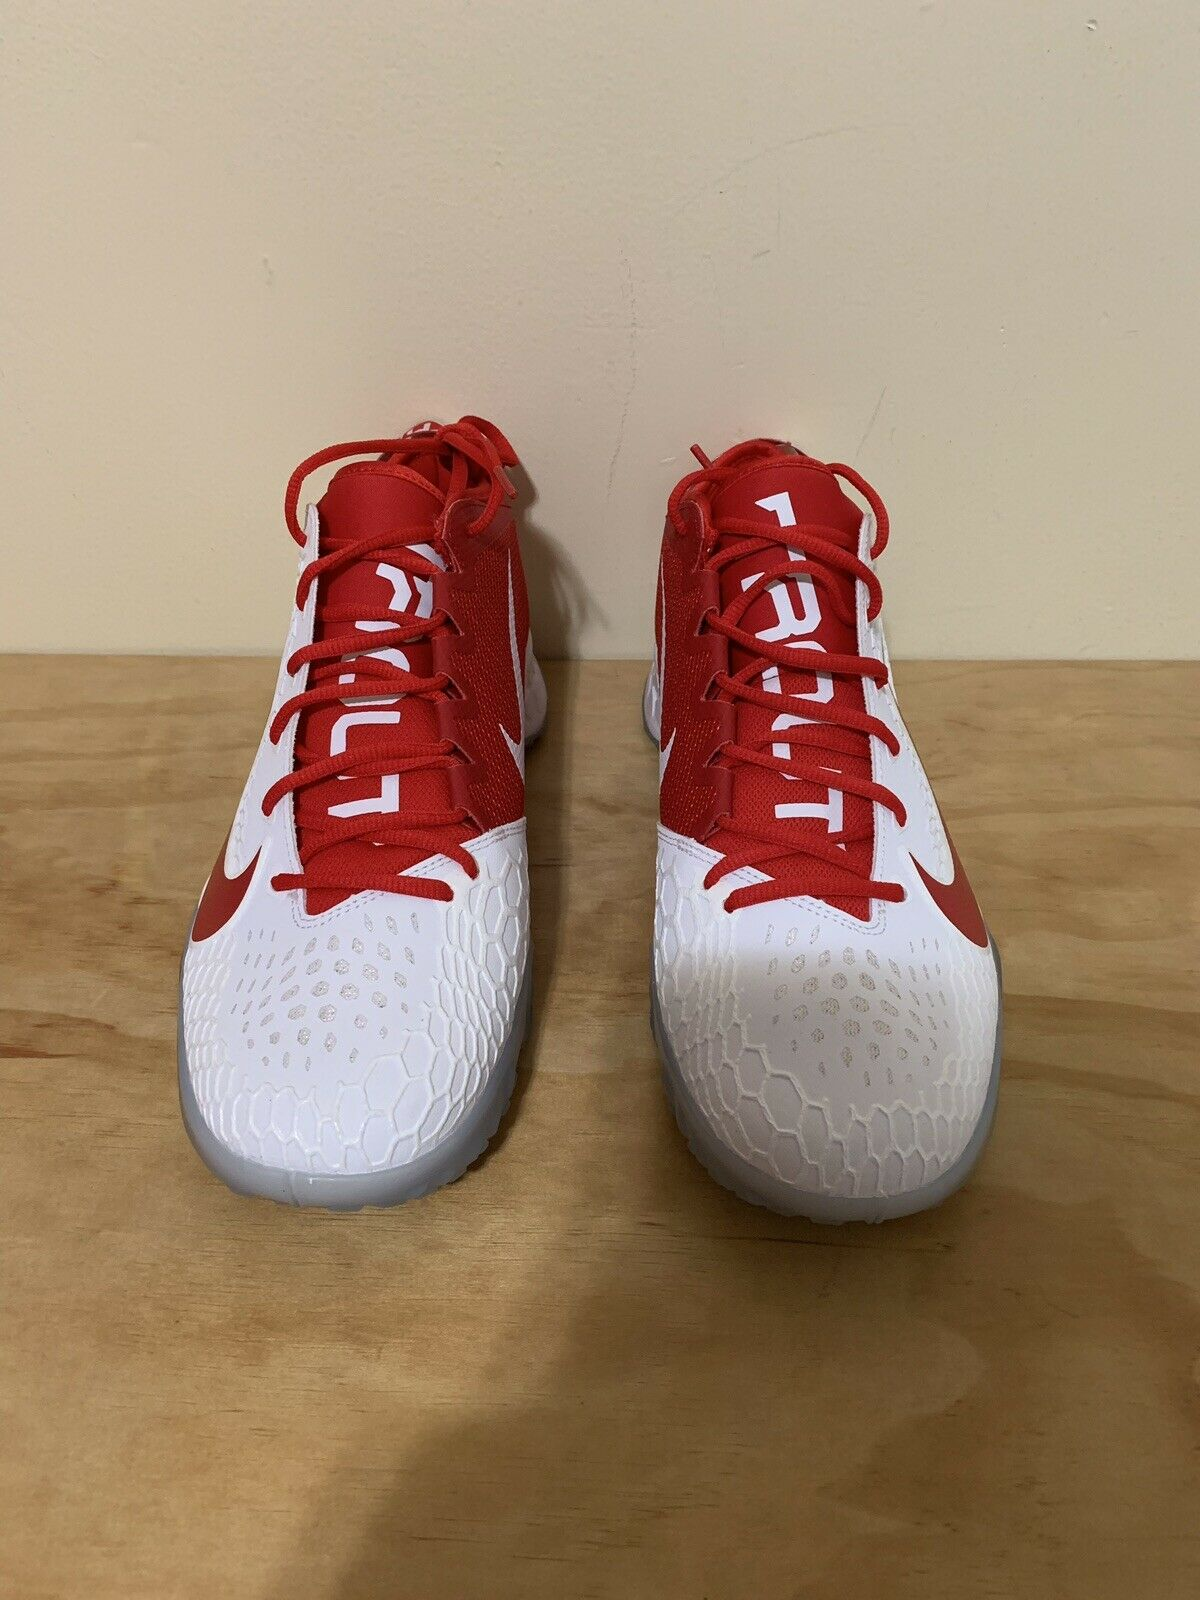 sports shoes d6aba b8813 NIKE FORCE ZOOM TROUT TROUT TROUT 5 TURF SHOES WHITE RED AH3374-161 SIZE  12.5